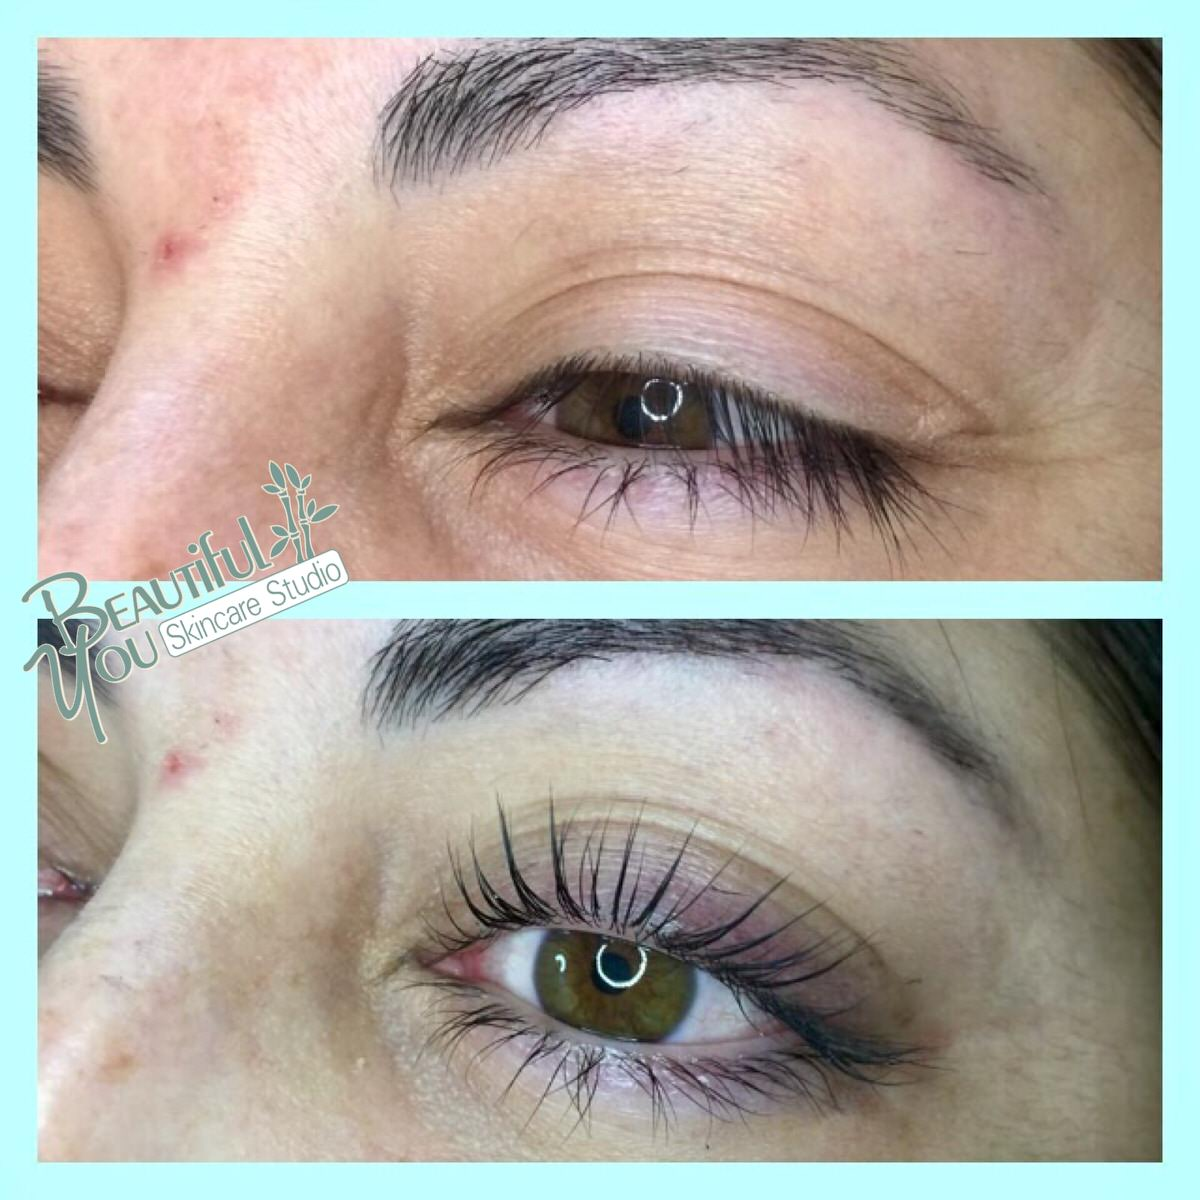 Beautiful-You-Skincare-Studio-Lash-Before-and-After9.jpg